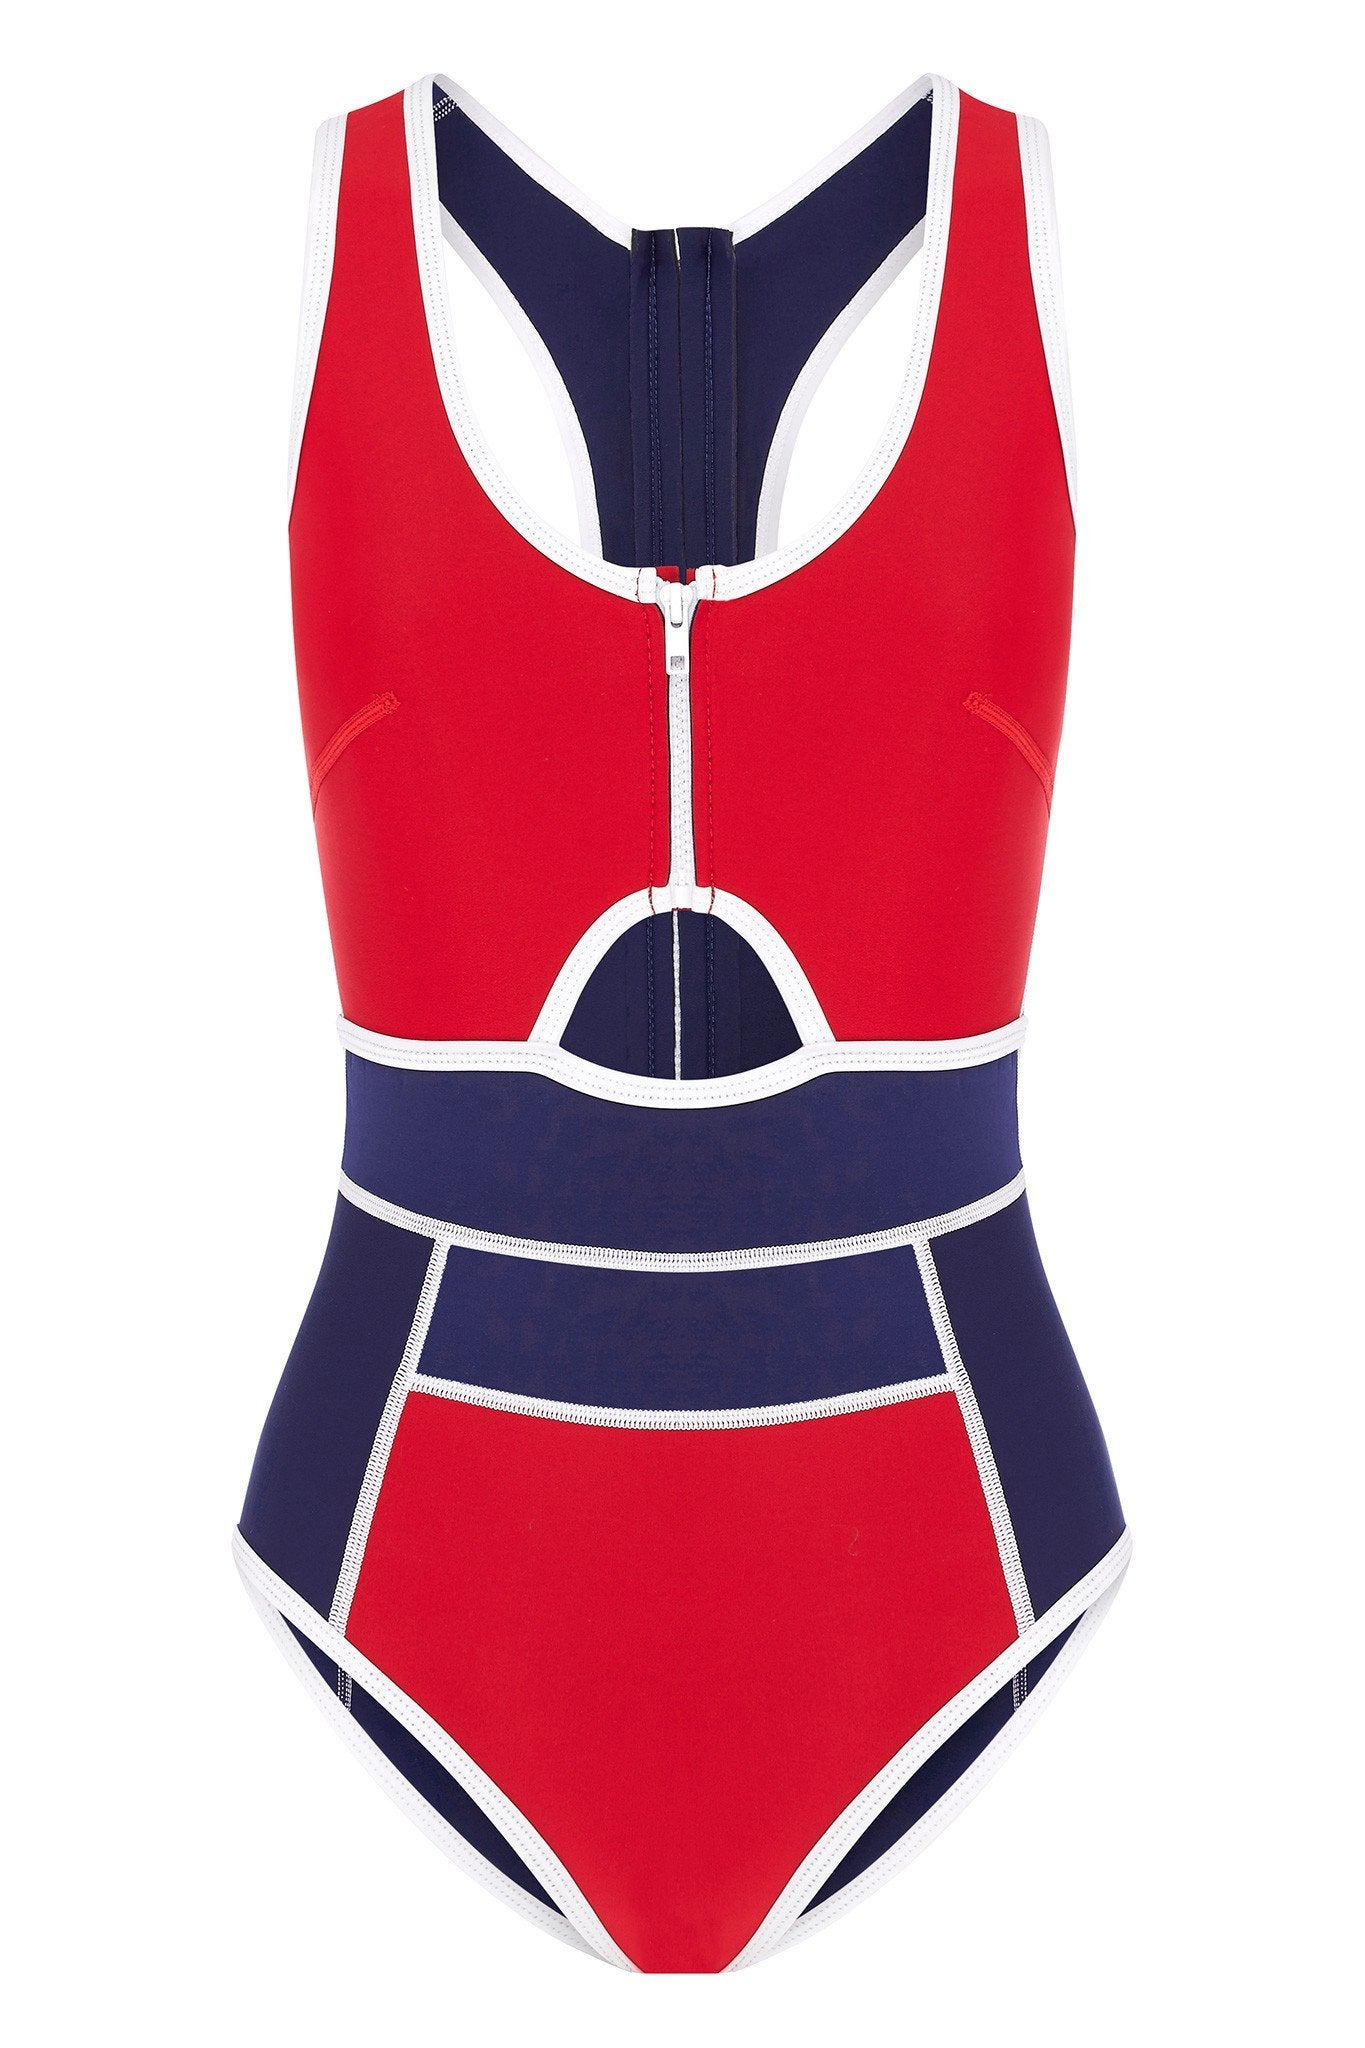 Duskii - Kailua Racer One Piece | Red & Navy-Duskii-Nomads Cove